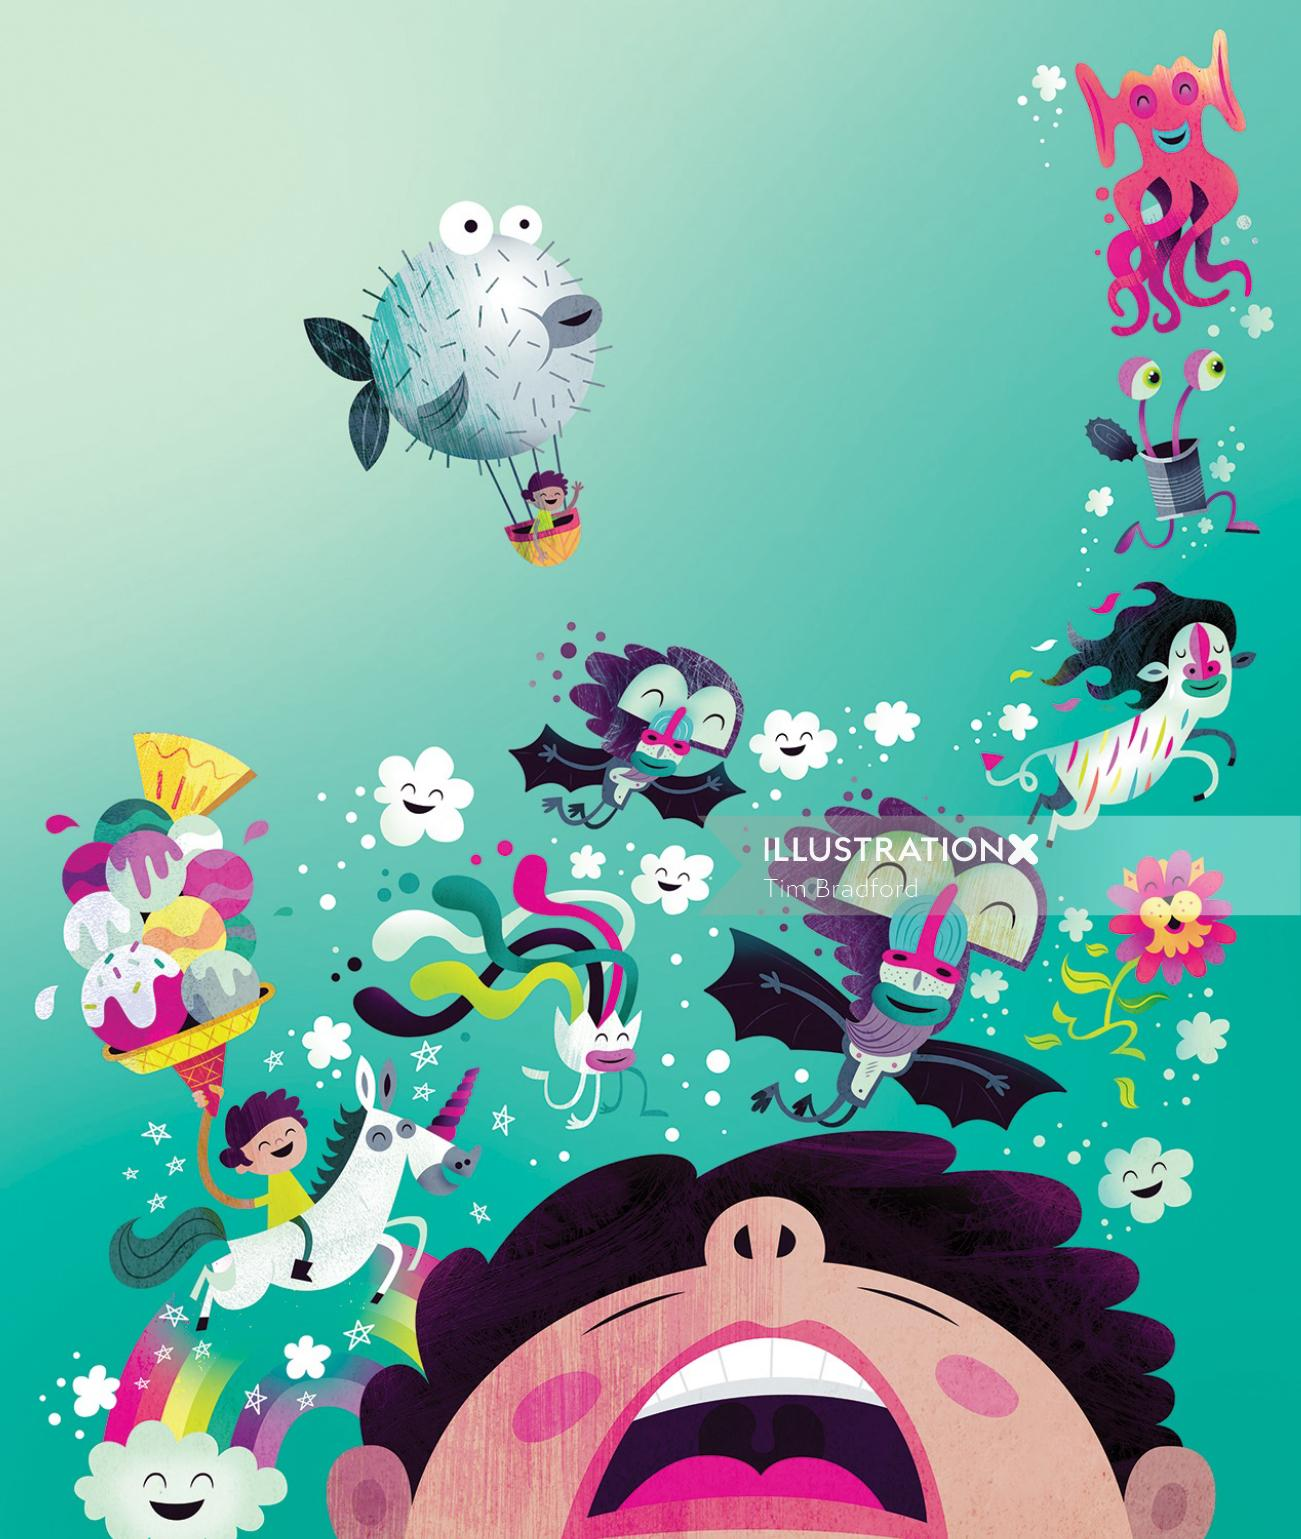 Illustration of characters in under water